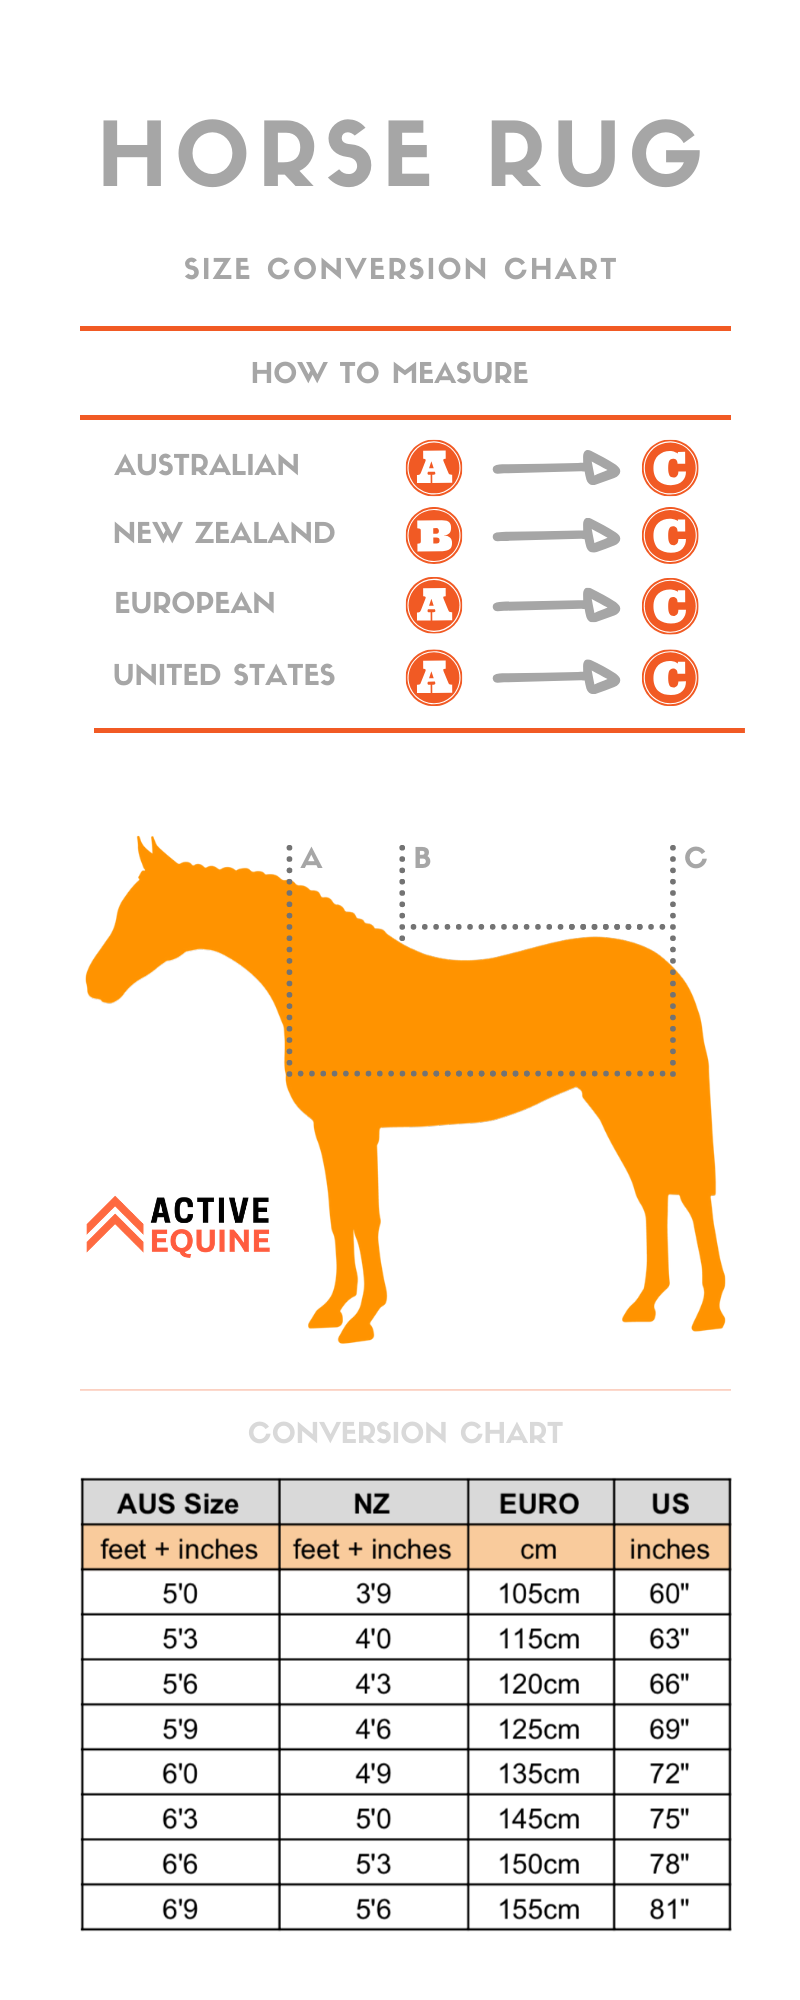 Active Equine Horse Rug Measurement and Size Guide including fitting diagram